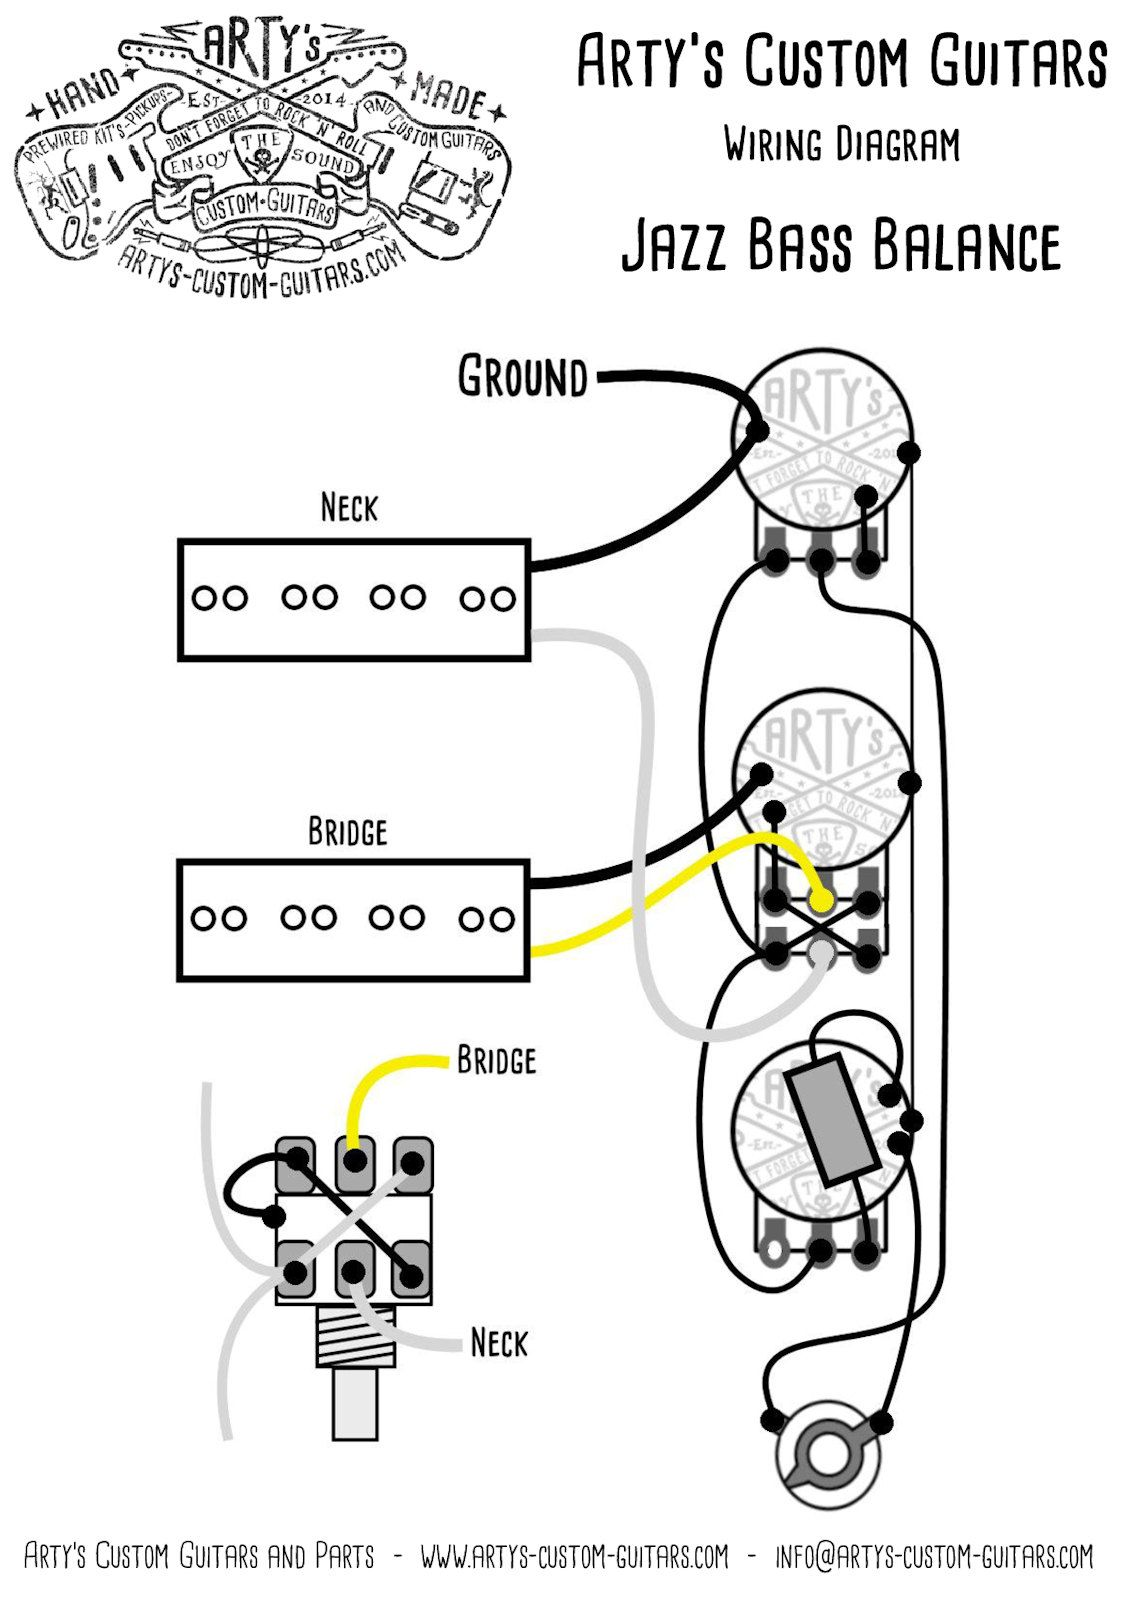 arty s custom guitars balance jazz bass pre wired prewired kit wiring assembly harness artys precision [ 1131 x 1600 Pixel ]